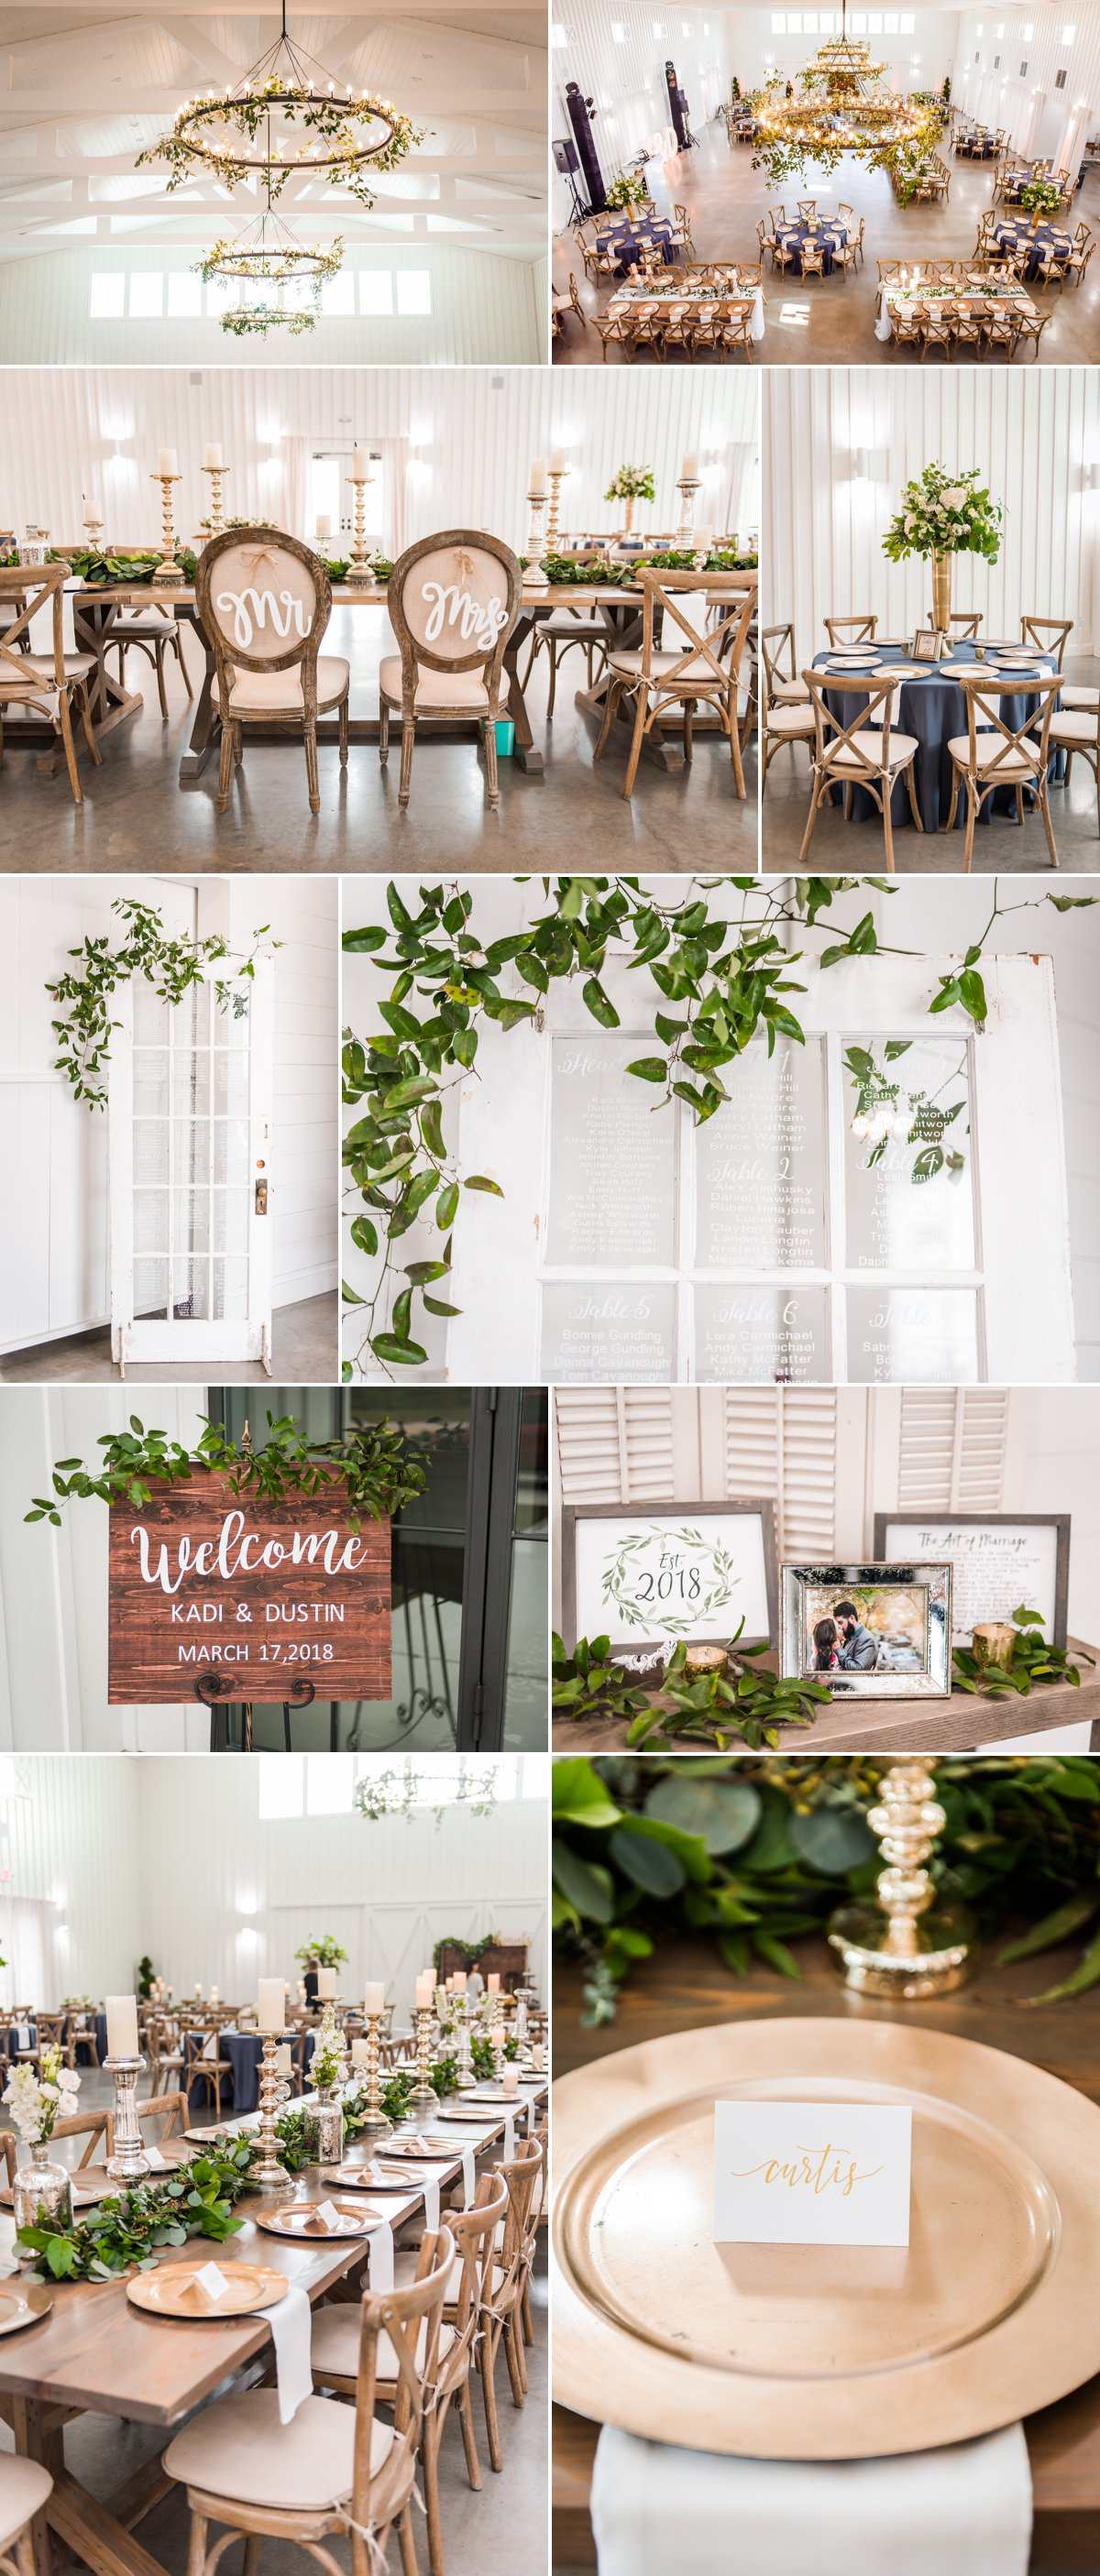 The Farmhouse Wedding Venue Wedding Decorations